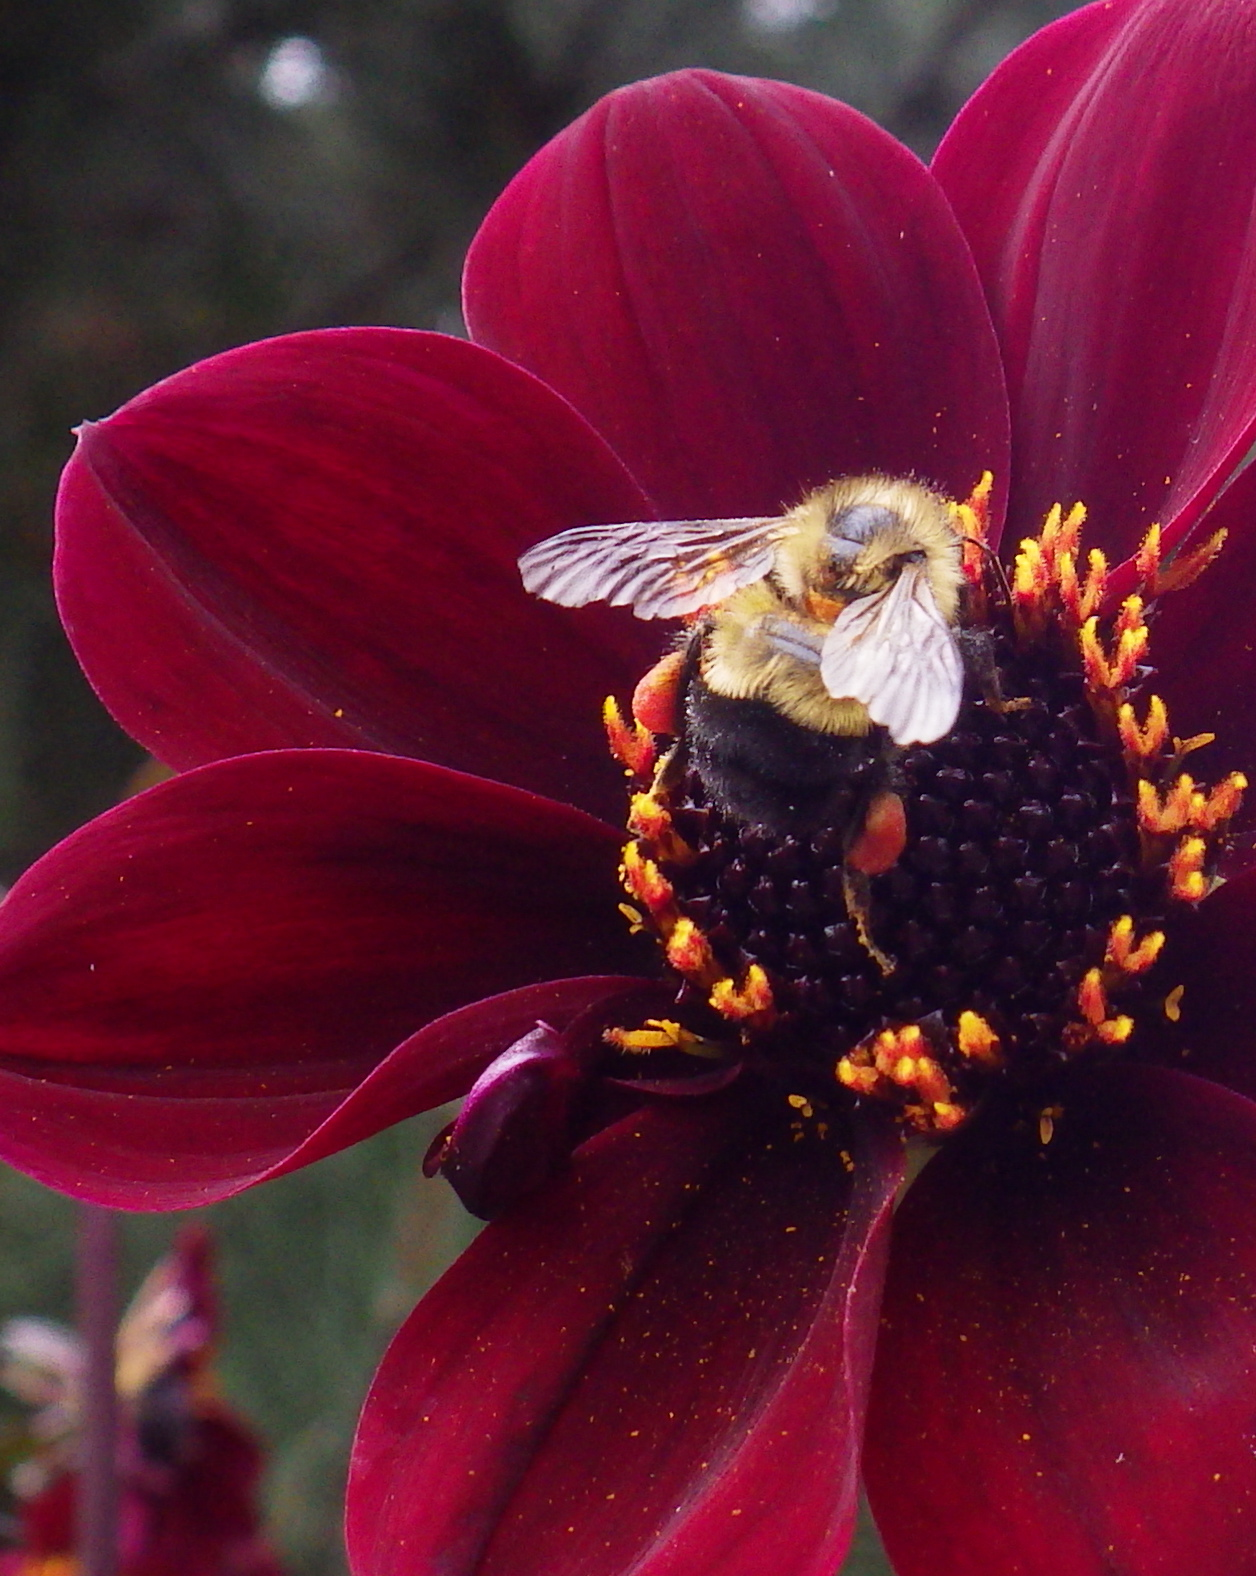 Victory Gardens for Bees: Summerland Bees: Those Hairy-Legged Beasties